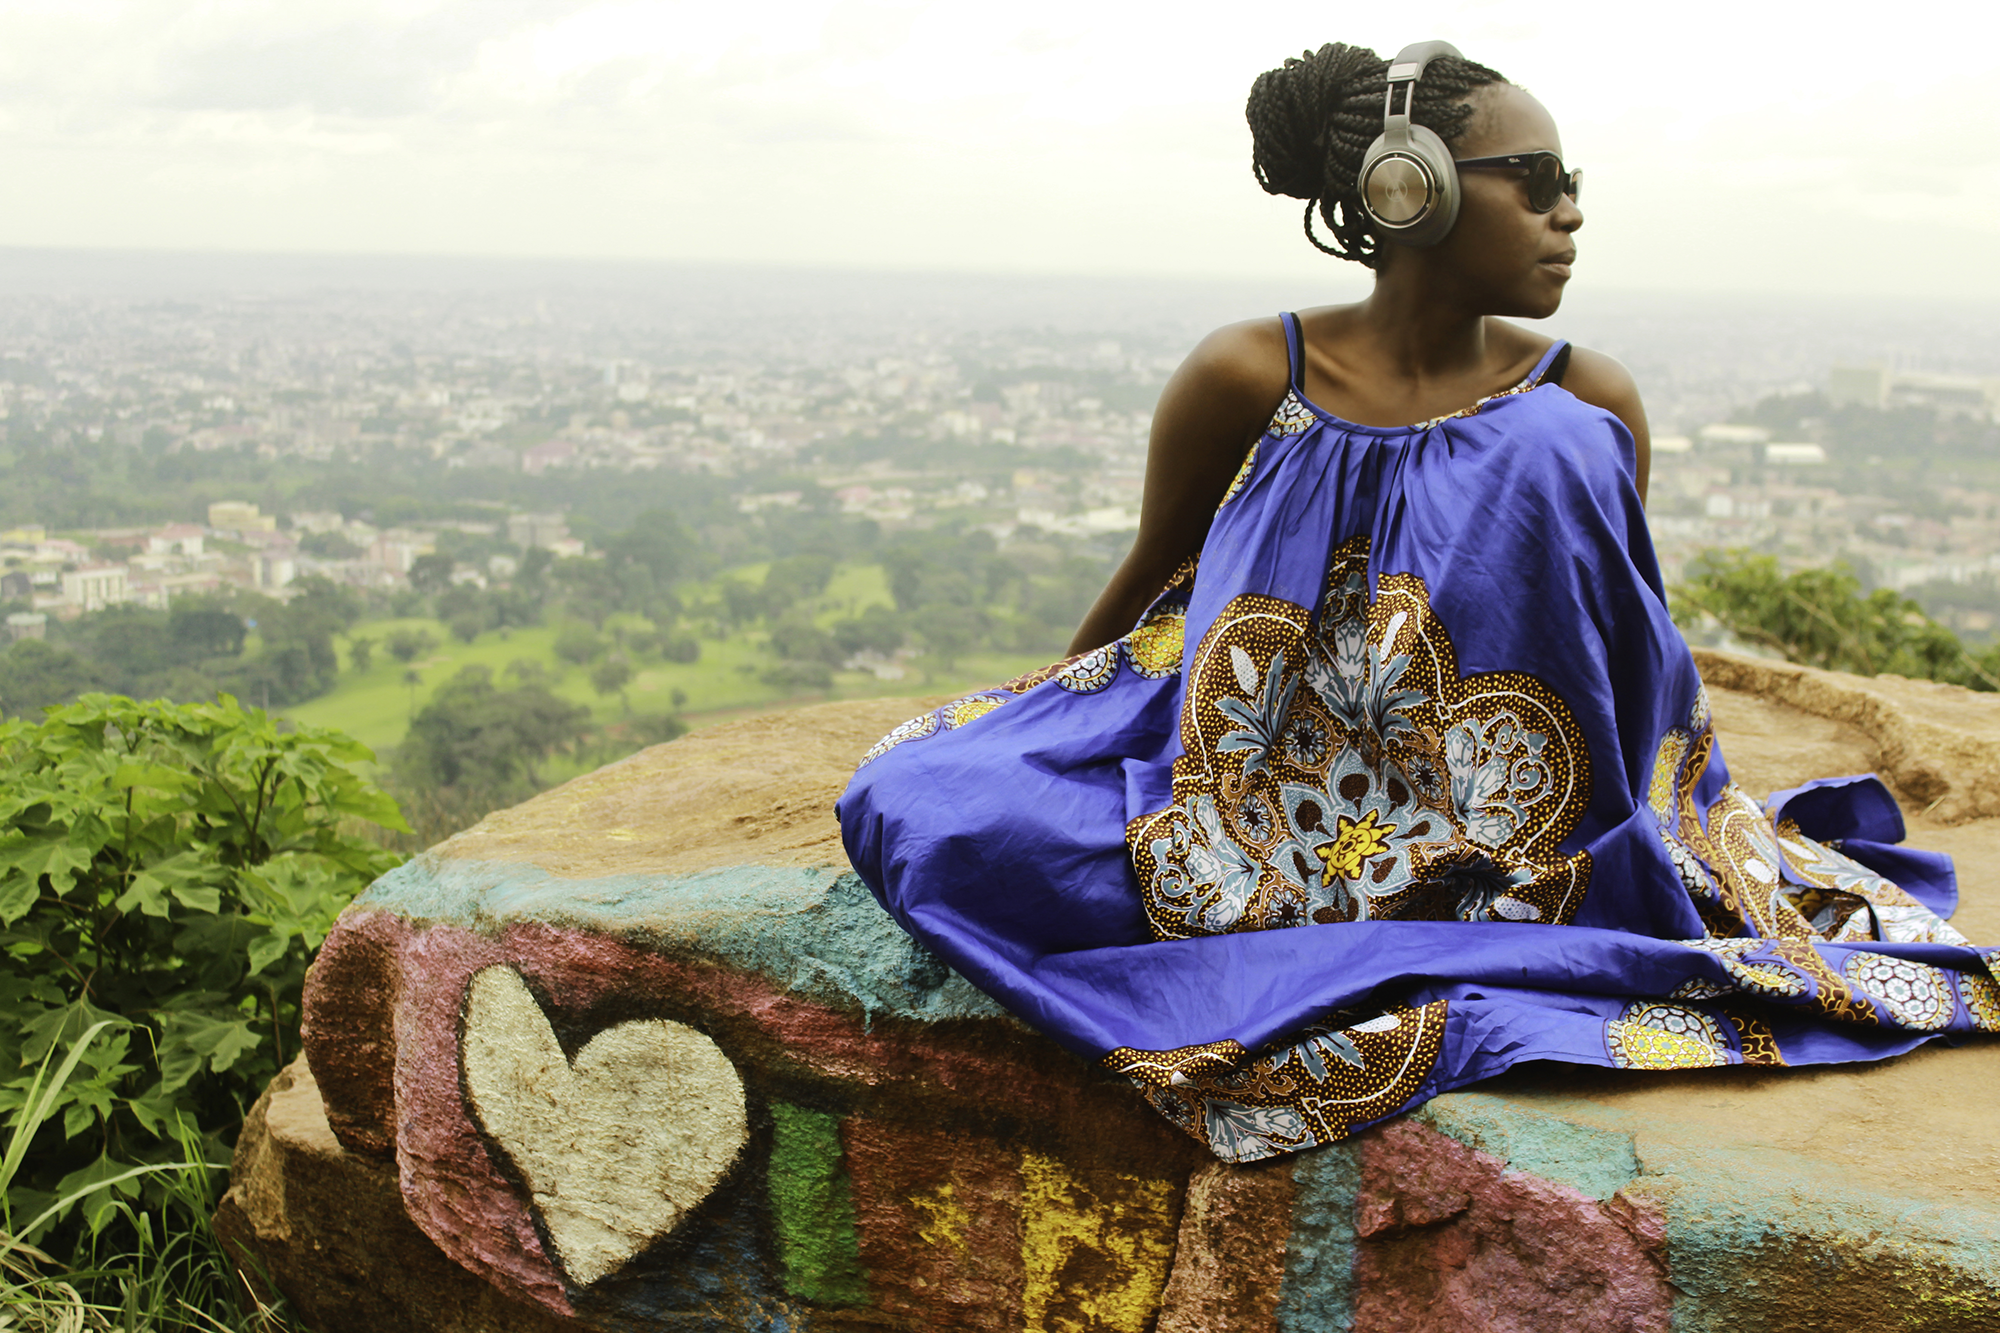 Valérie Ekoumè in Cameroon where she spent part of her childhood